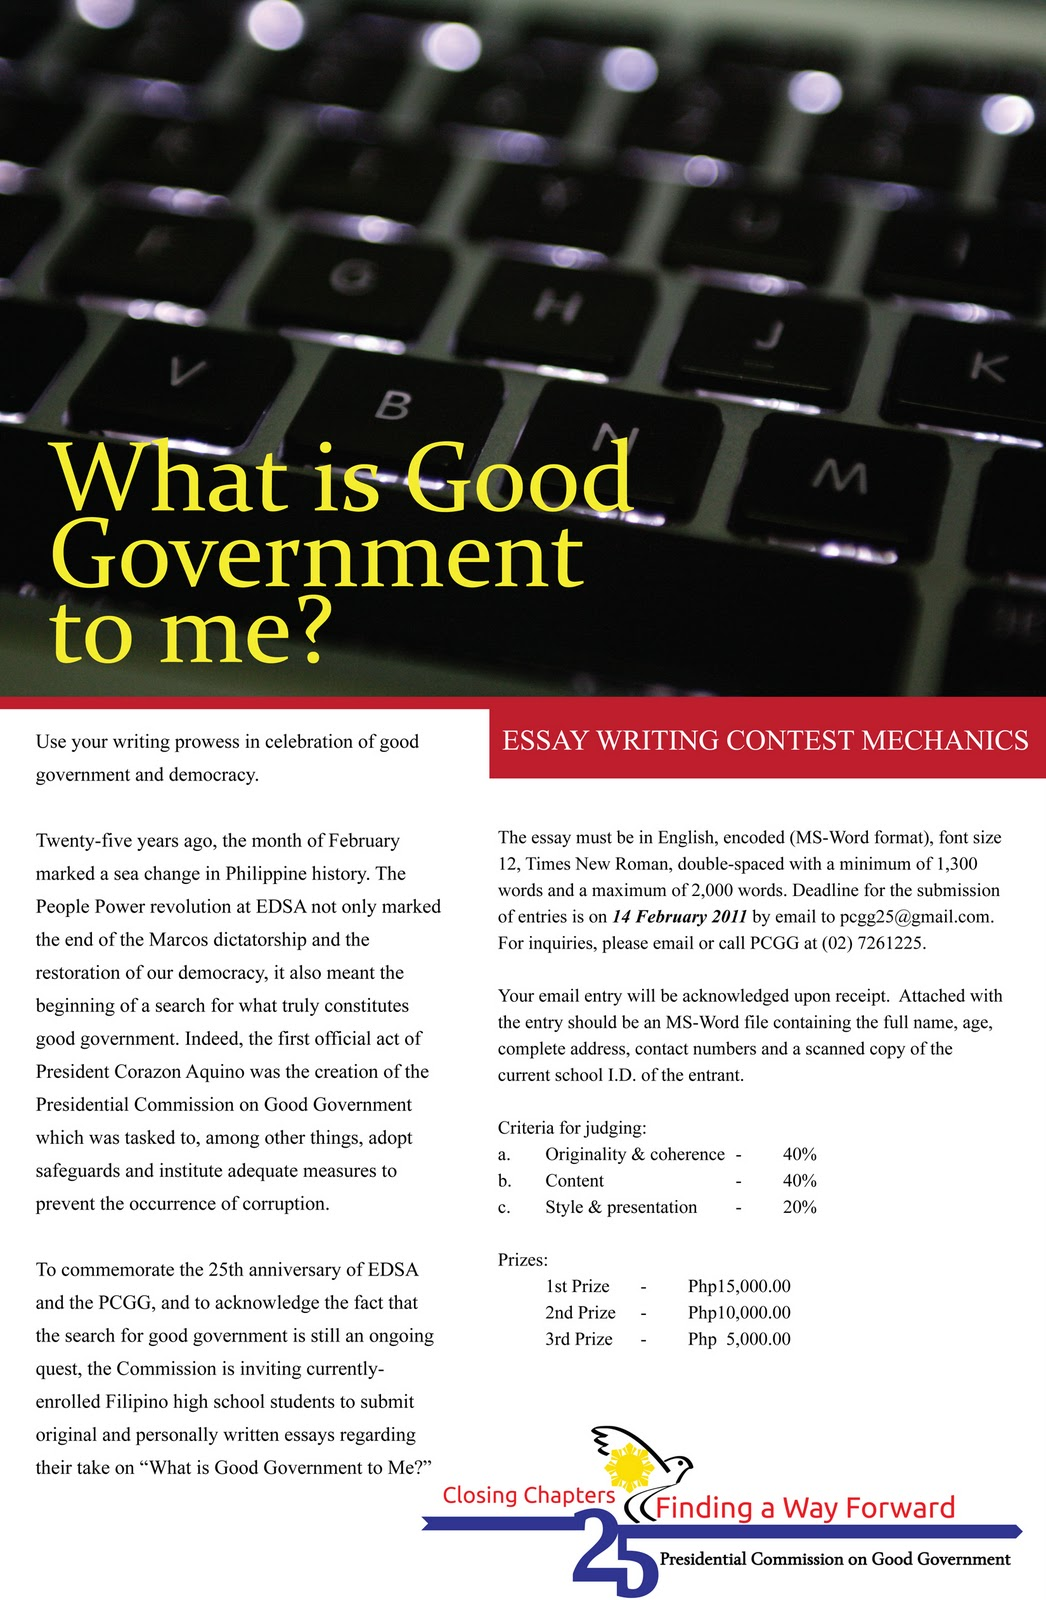 good governance 2 essay Need essay sample on good governance we will write a cheap essay sample on good governance specifically for you for only $1290/page.